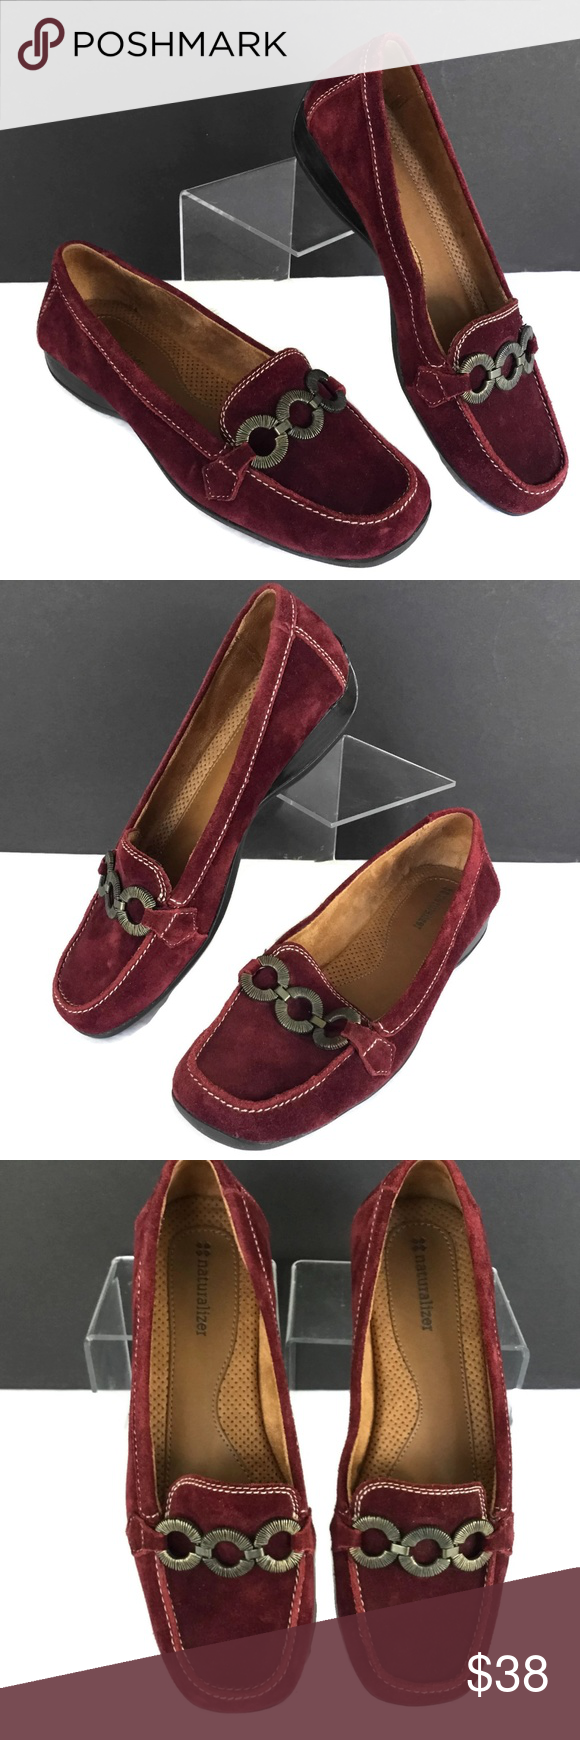 Naturalizer Loafer Women 7M Driving